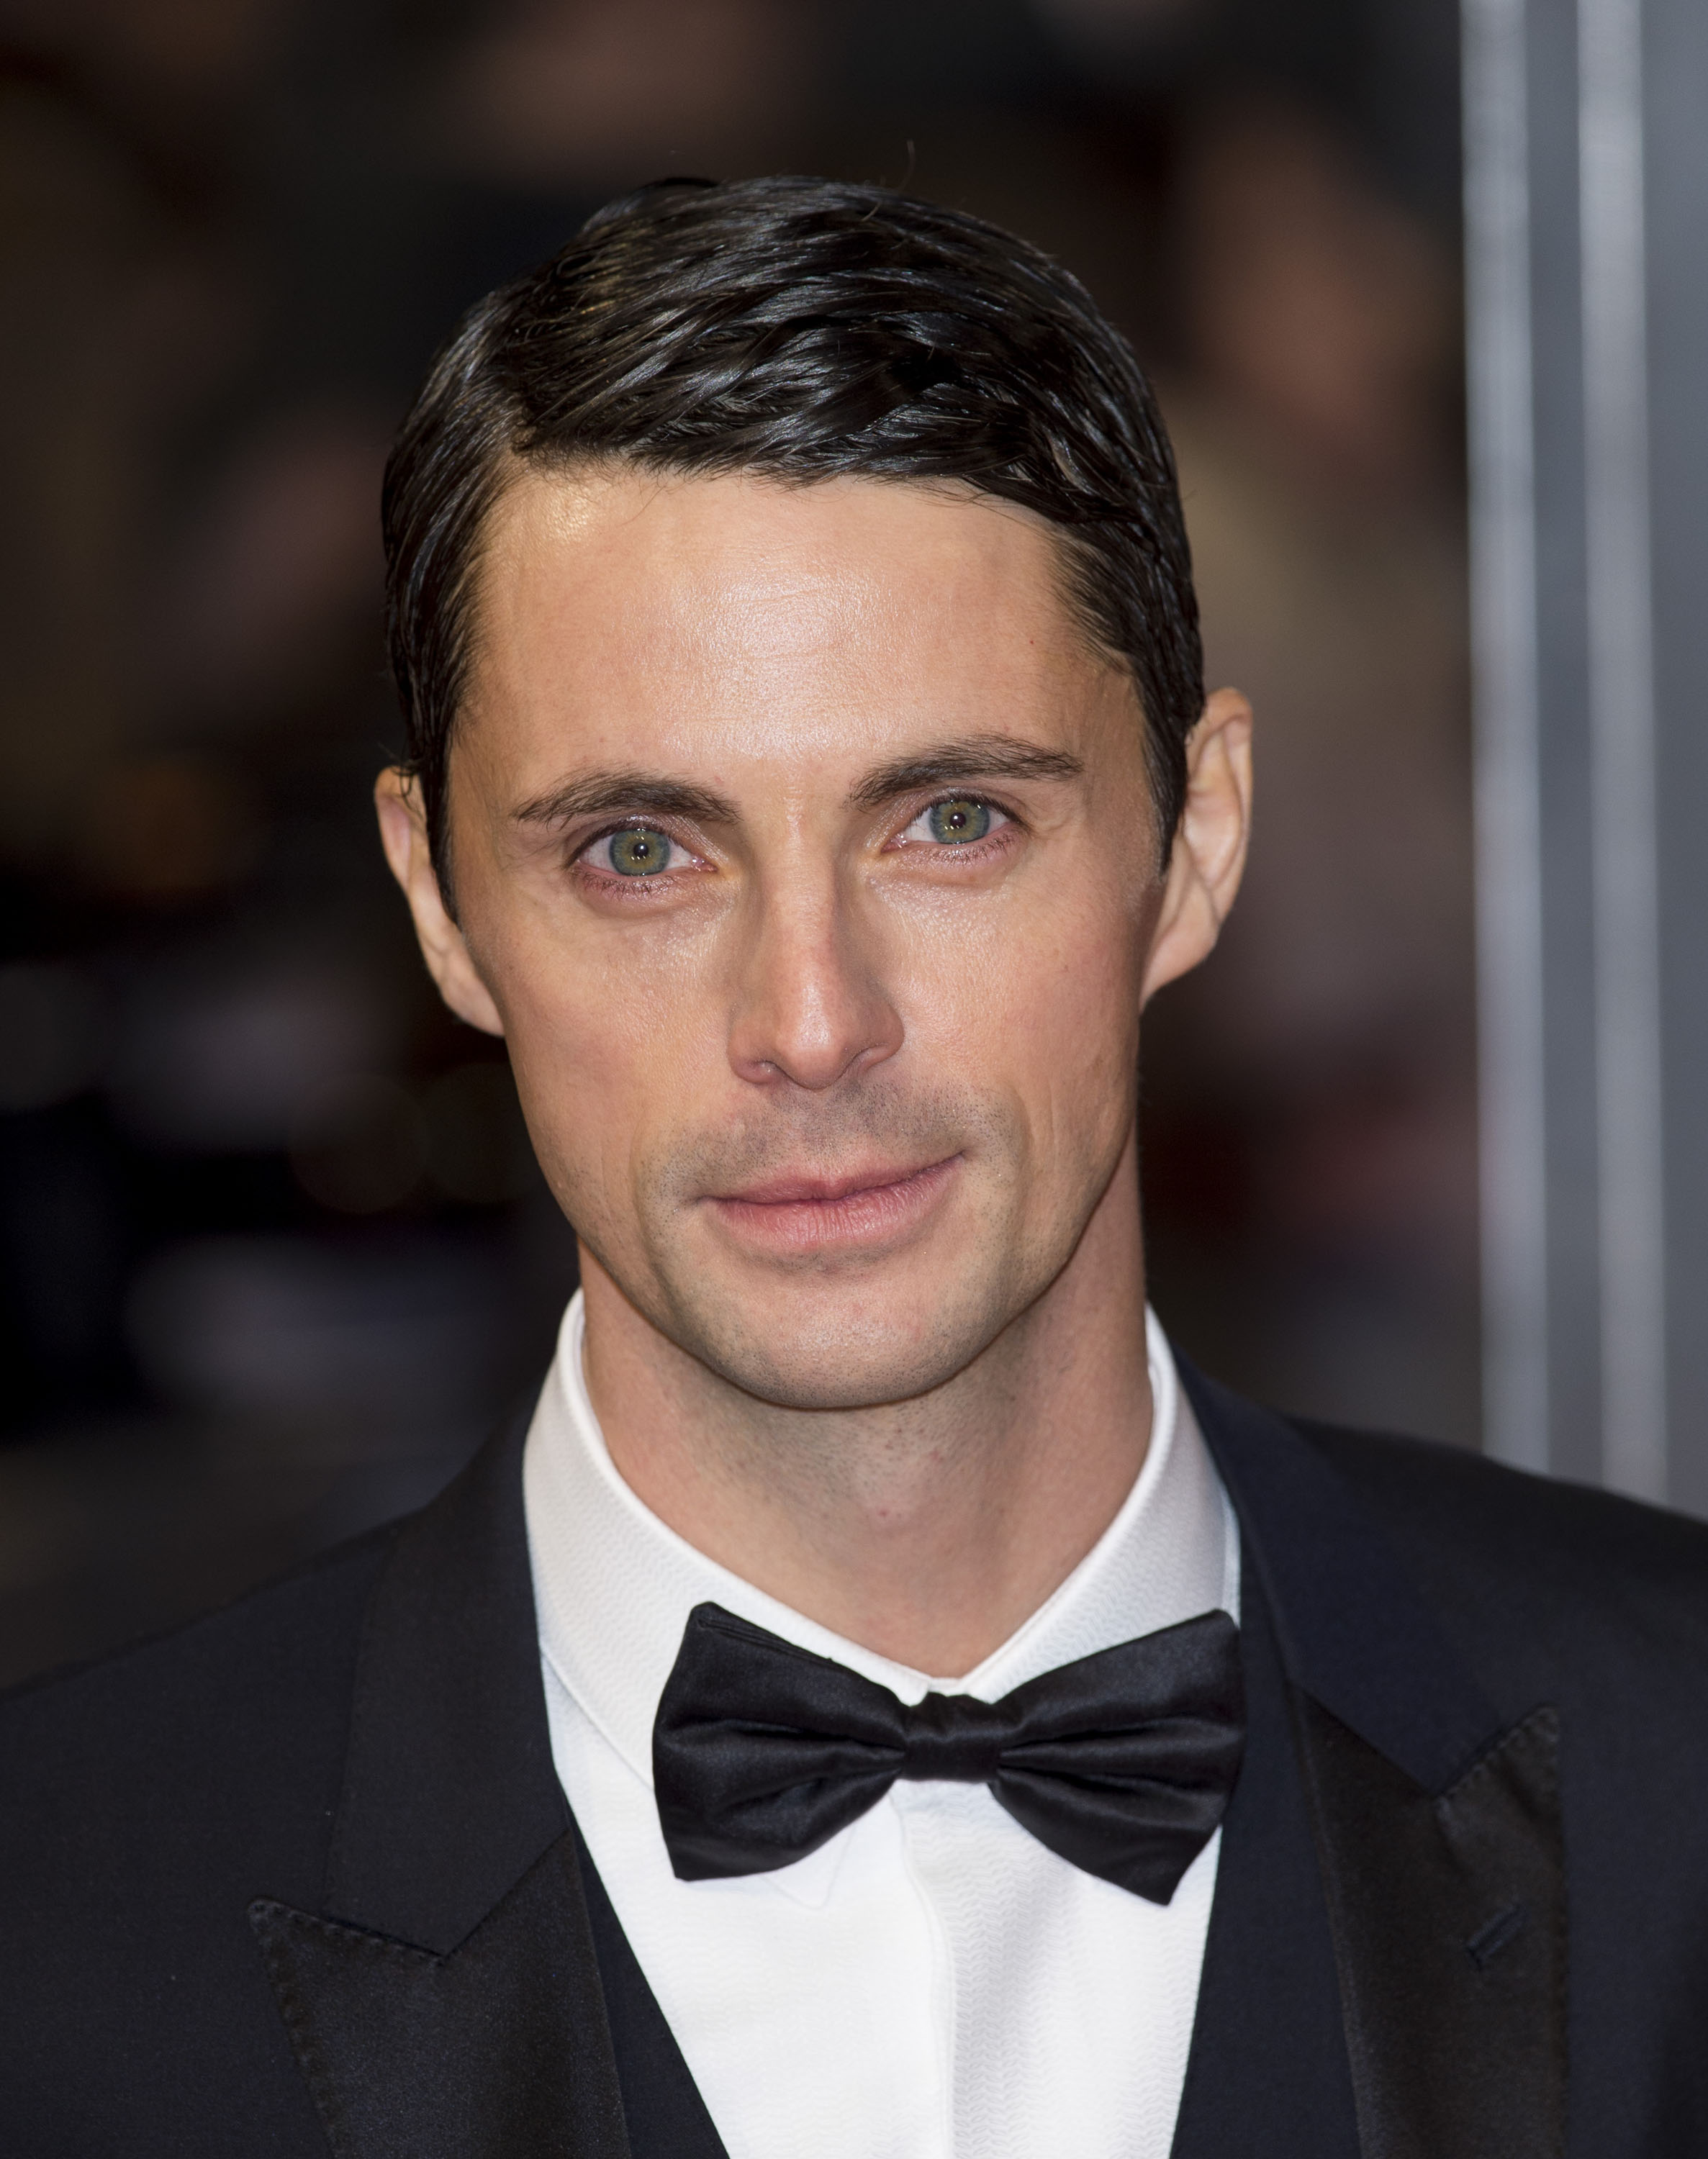 LONDON, ENGLAND - FEBRUARY 08: Matthew Goode attends the EE British Academy Film Awards at The Royal Opera House on February 8, 2015 in London, England. (Photo by Mark Cuthbert/UK Press via Getty Images)